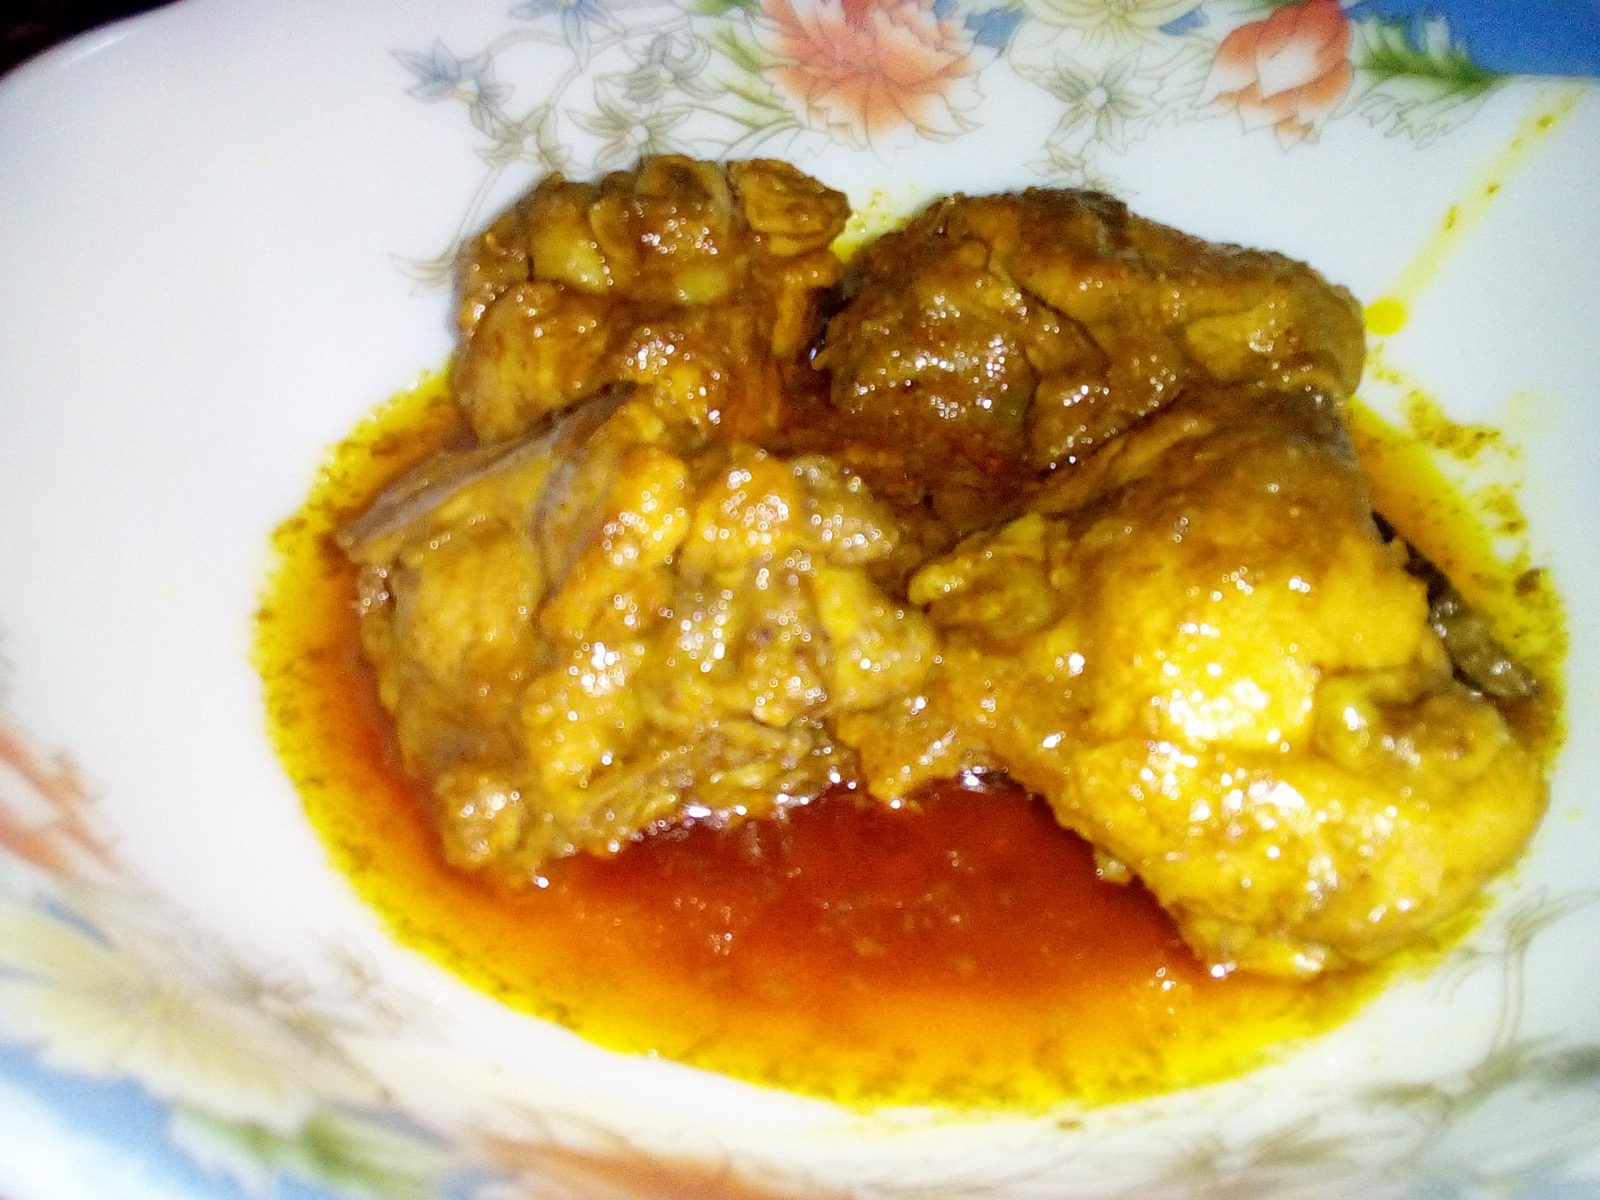 Farm Chicken Vuna from Sompurna Rannaghor